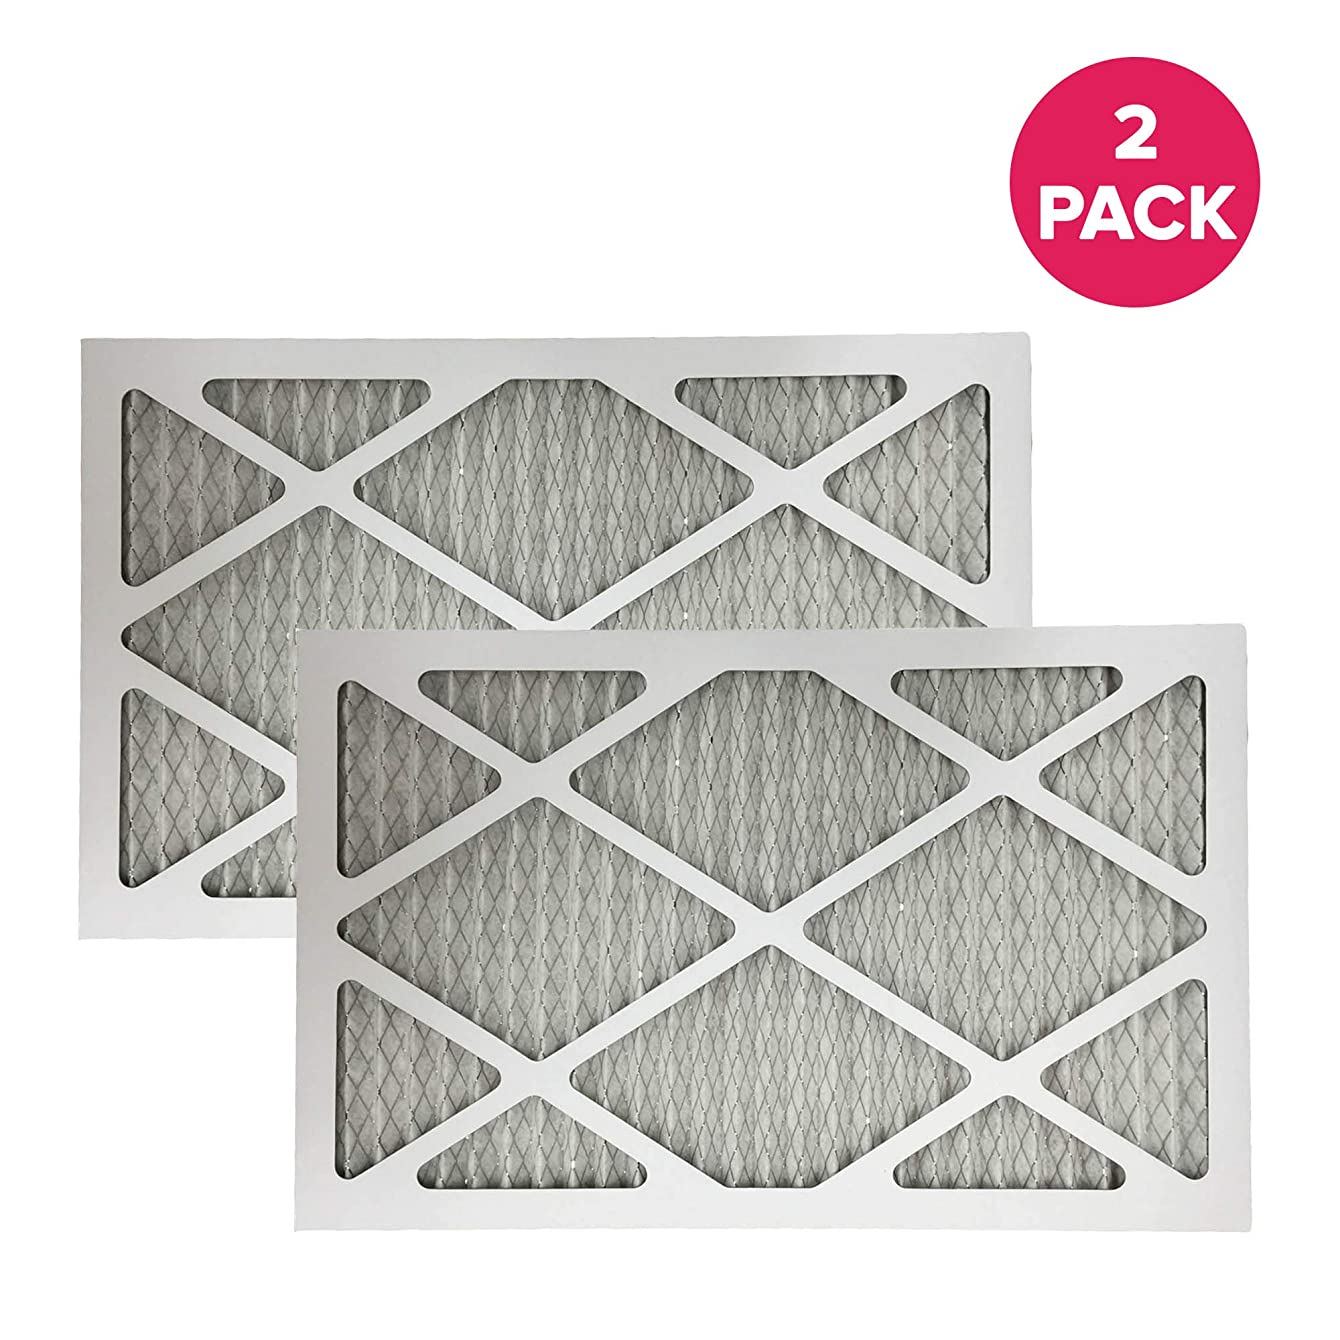 Think Crucial 2 Replacements for 12x24x1 MERV 11 Pleated Allergen Air Furnace and Air Conditioner Filter